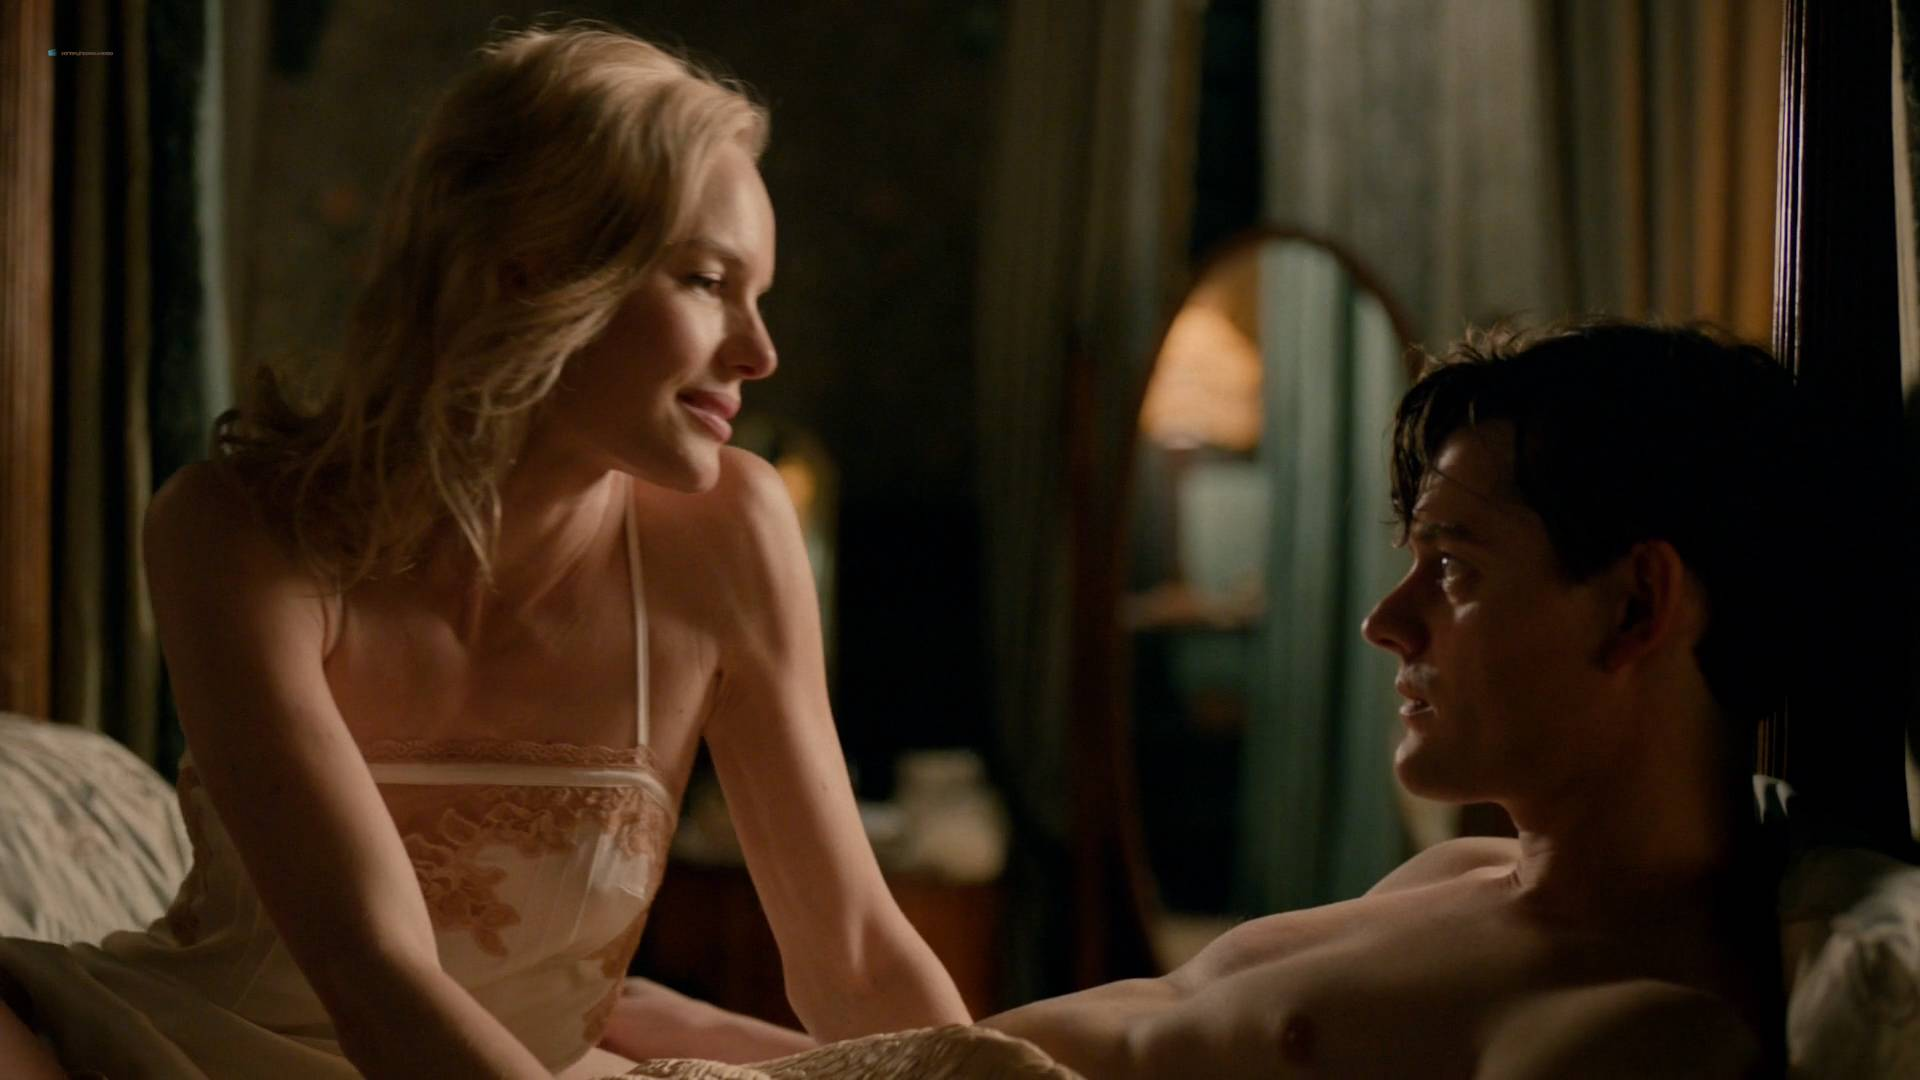 Kate bosworth nude leaked scandal and sex picture scenes